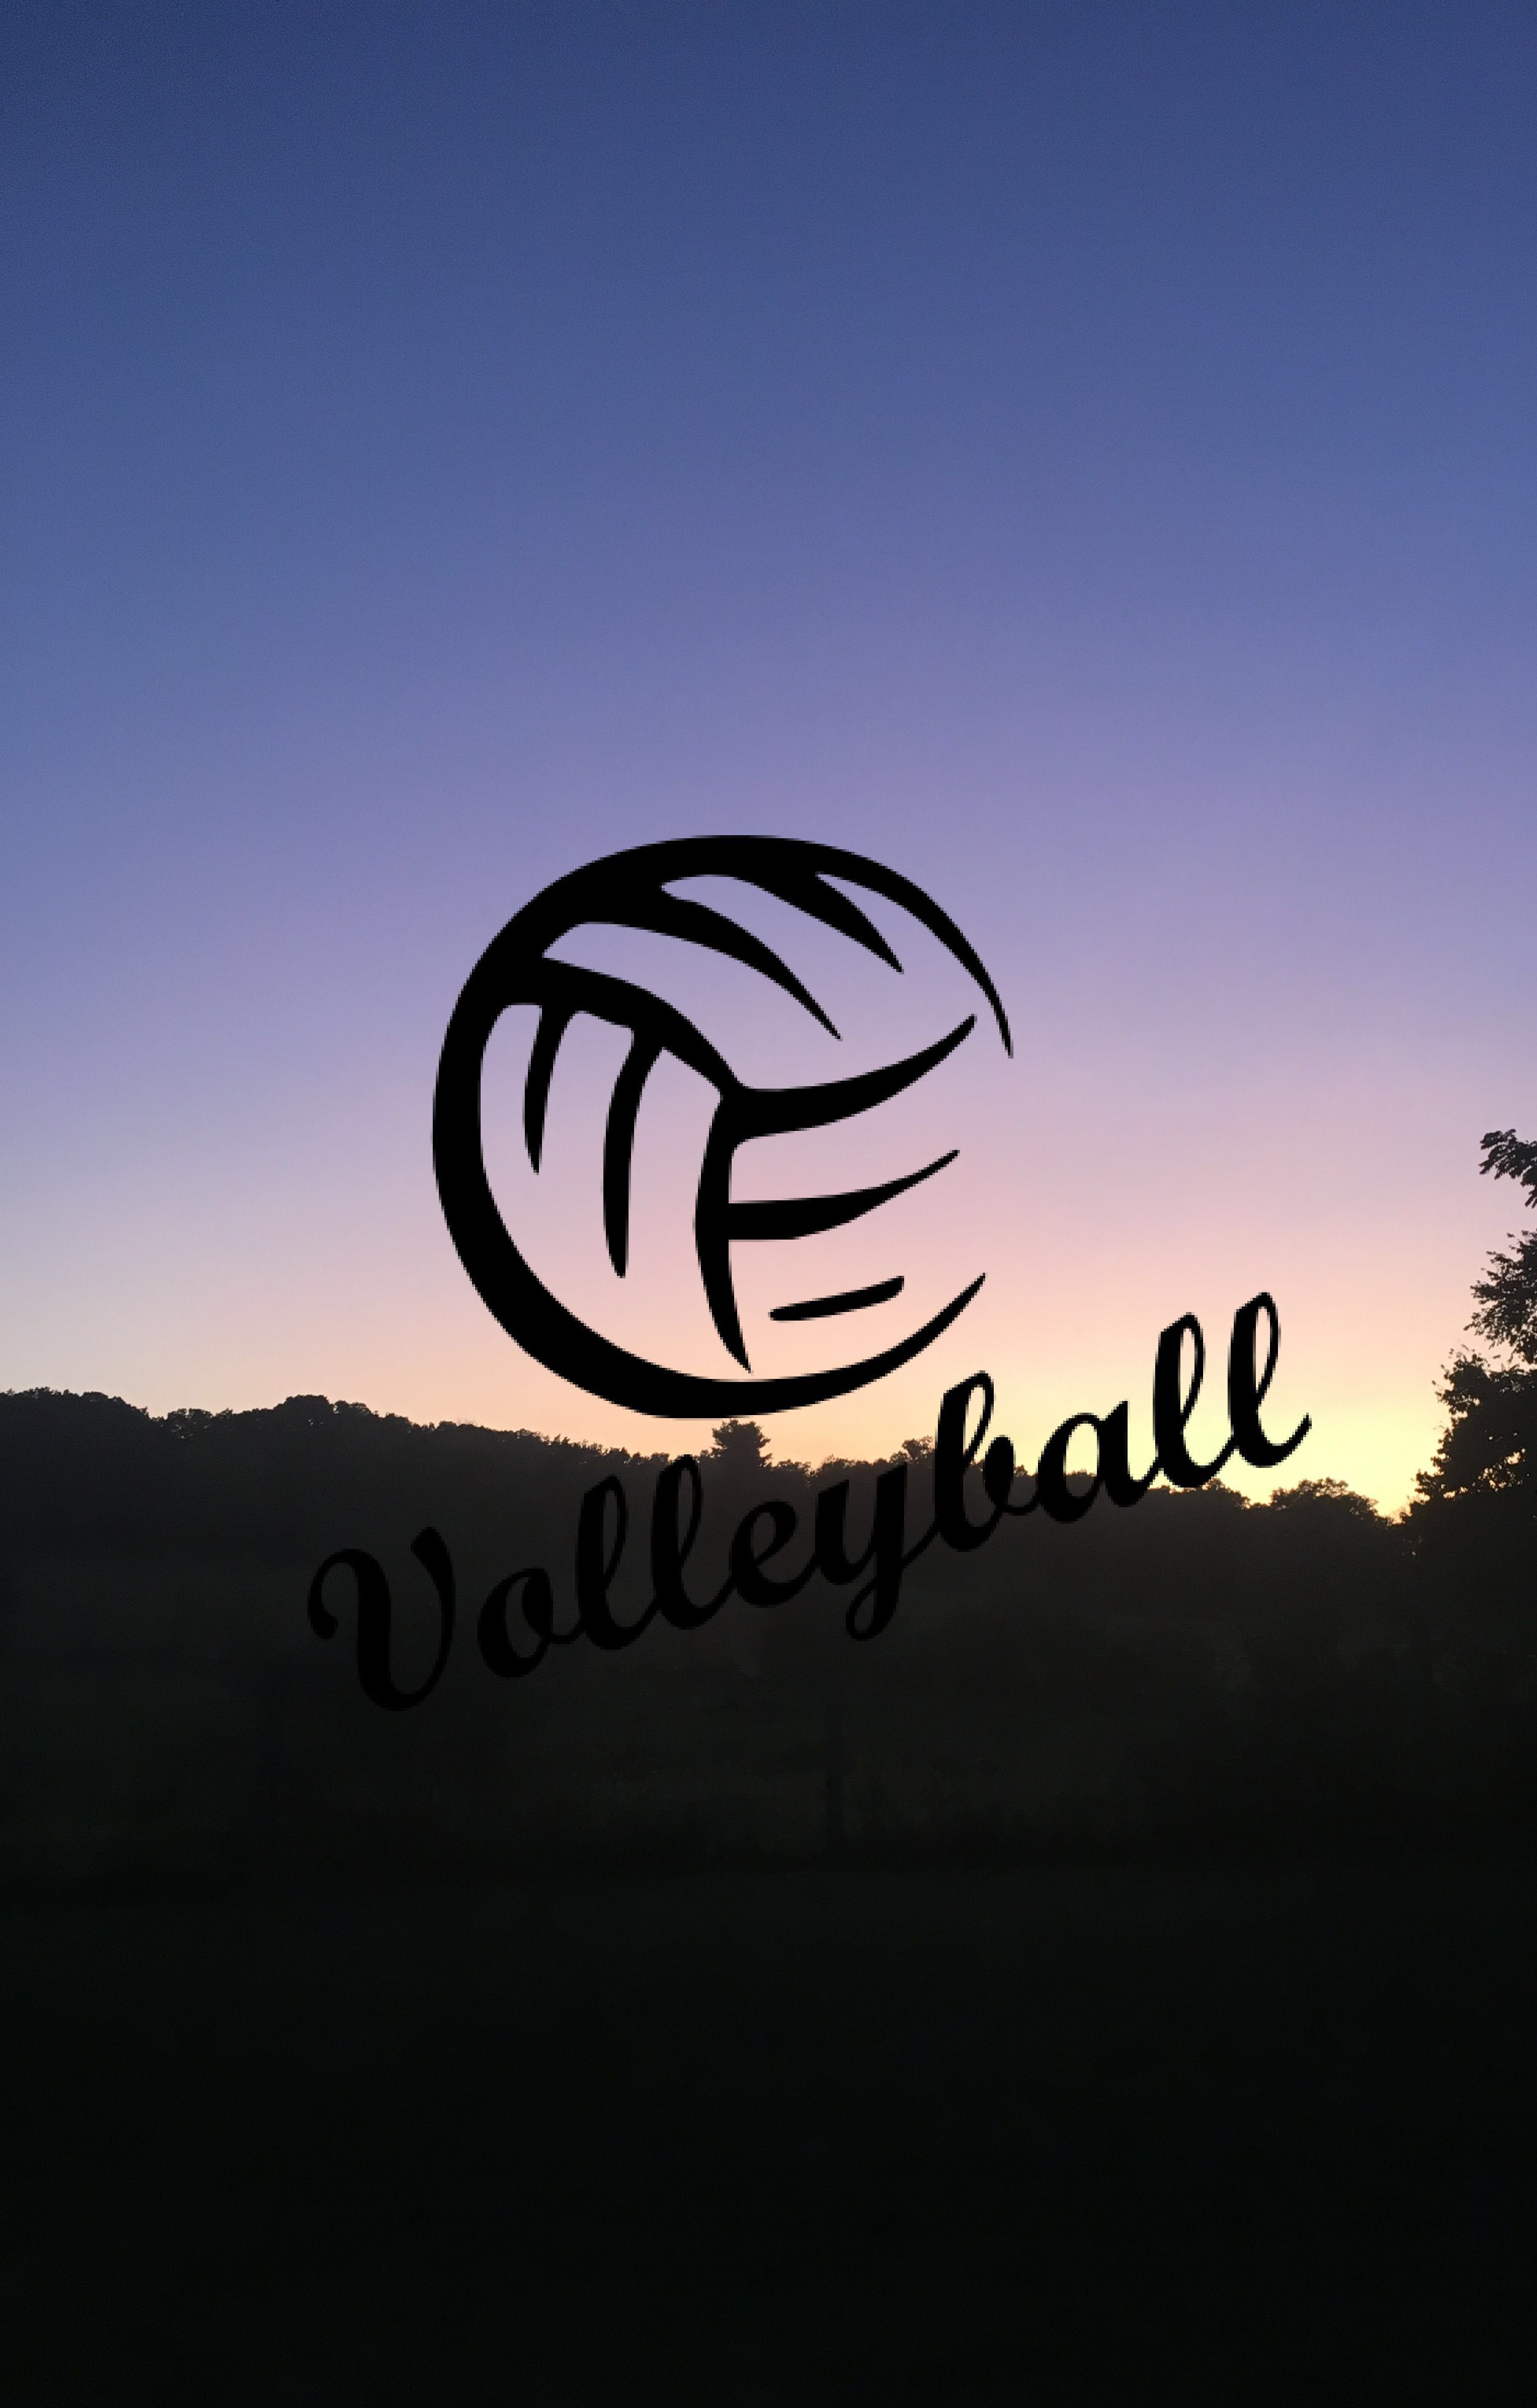 Volleyball backgrounds for iphone